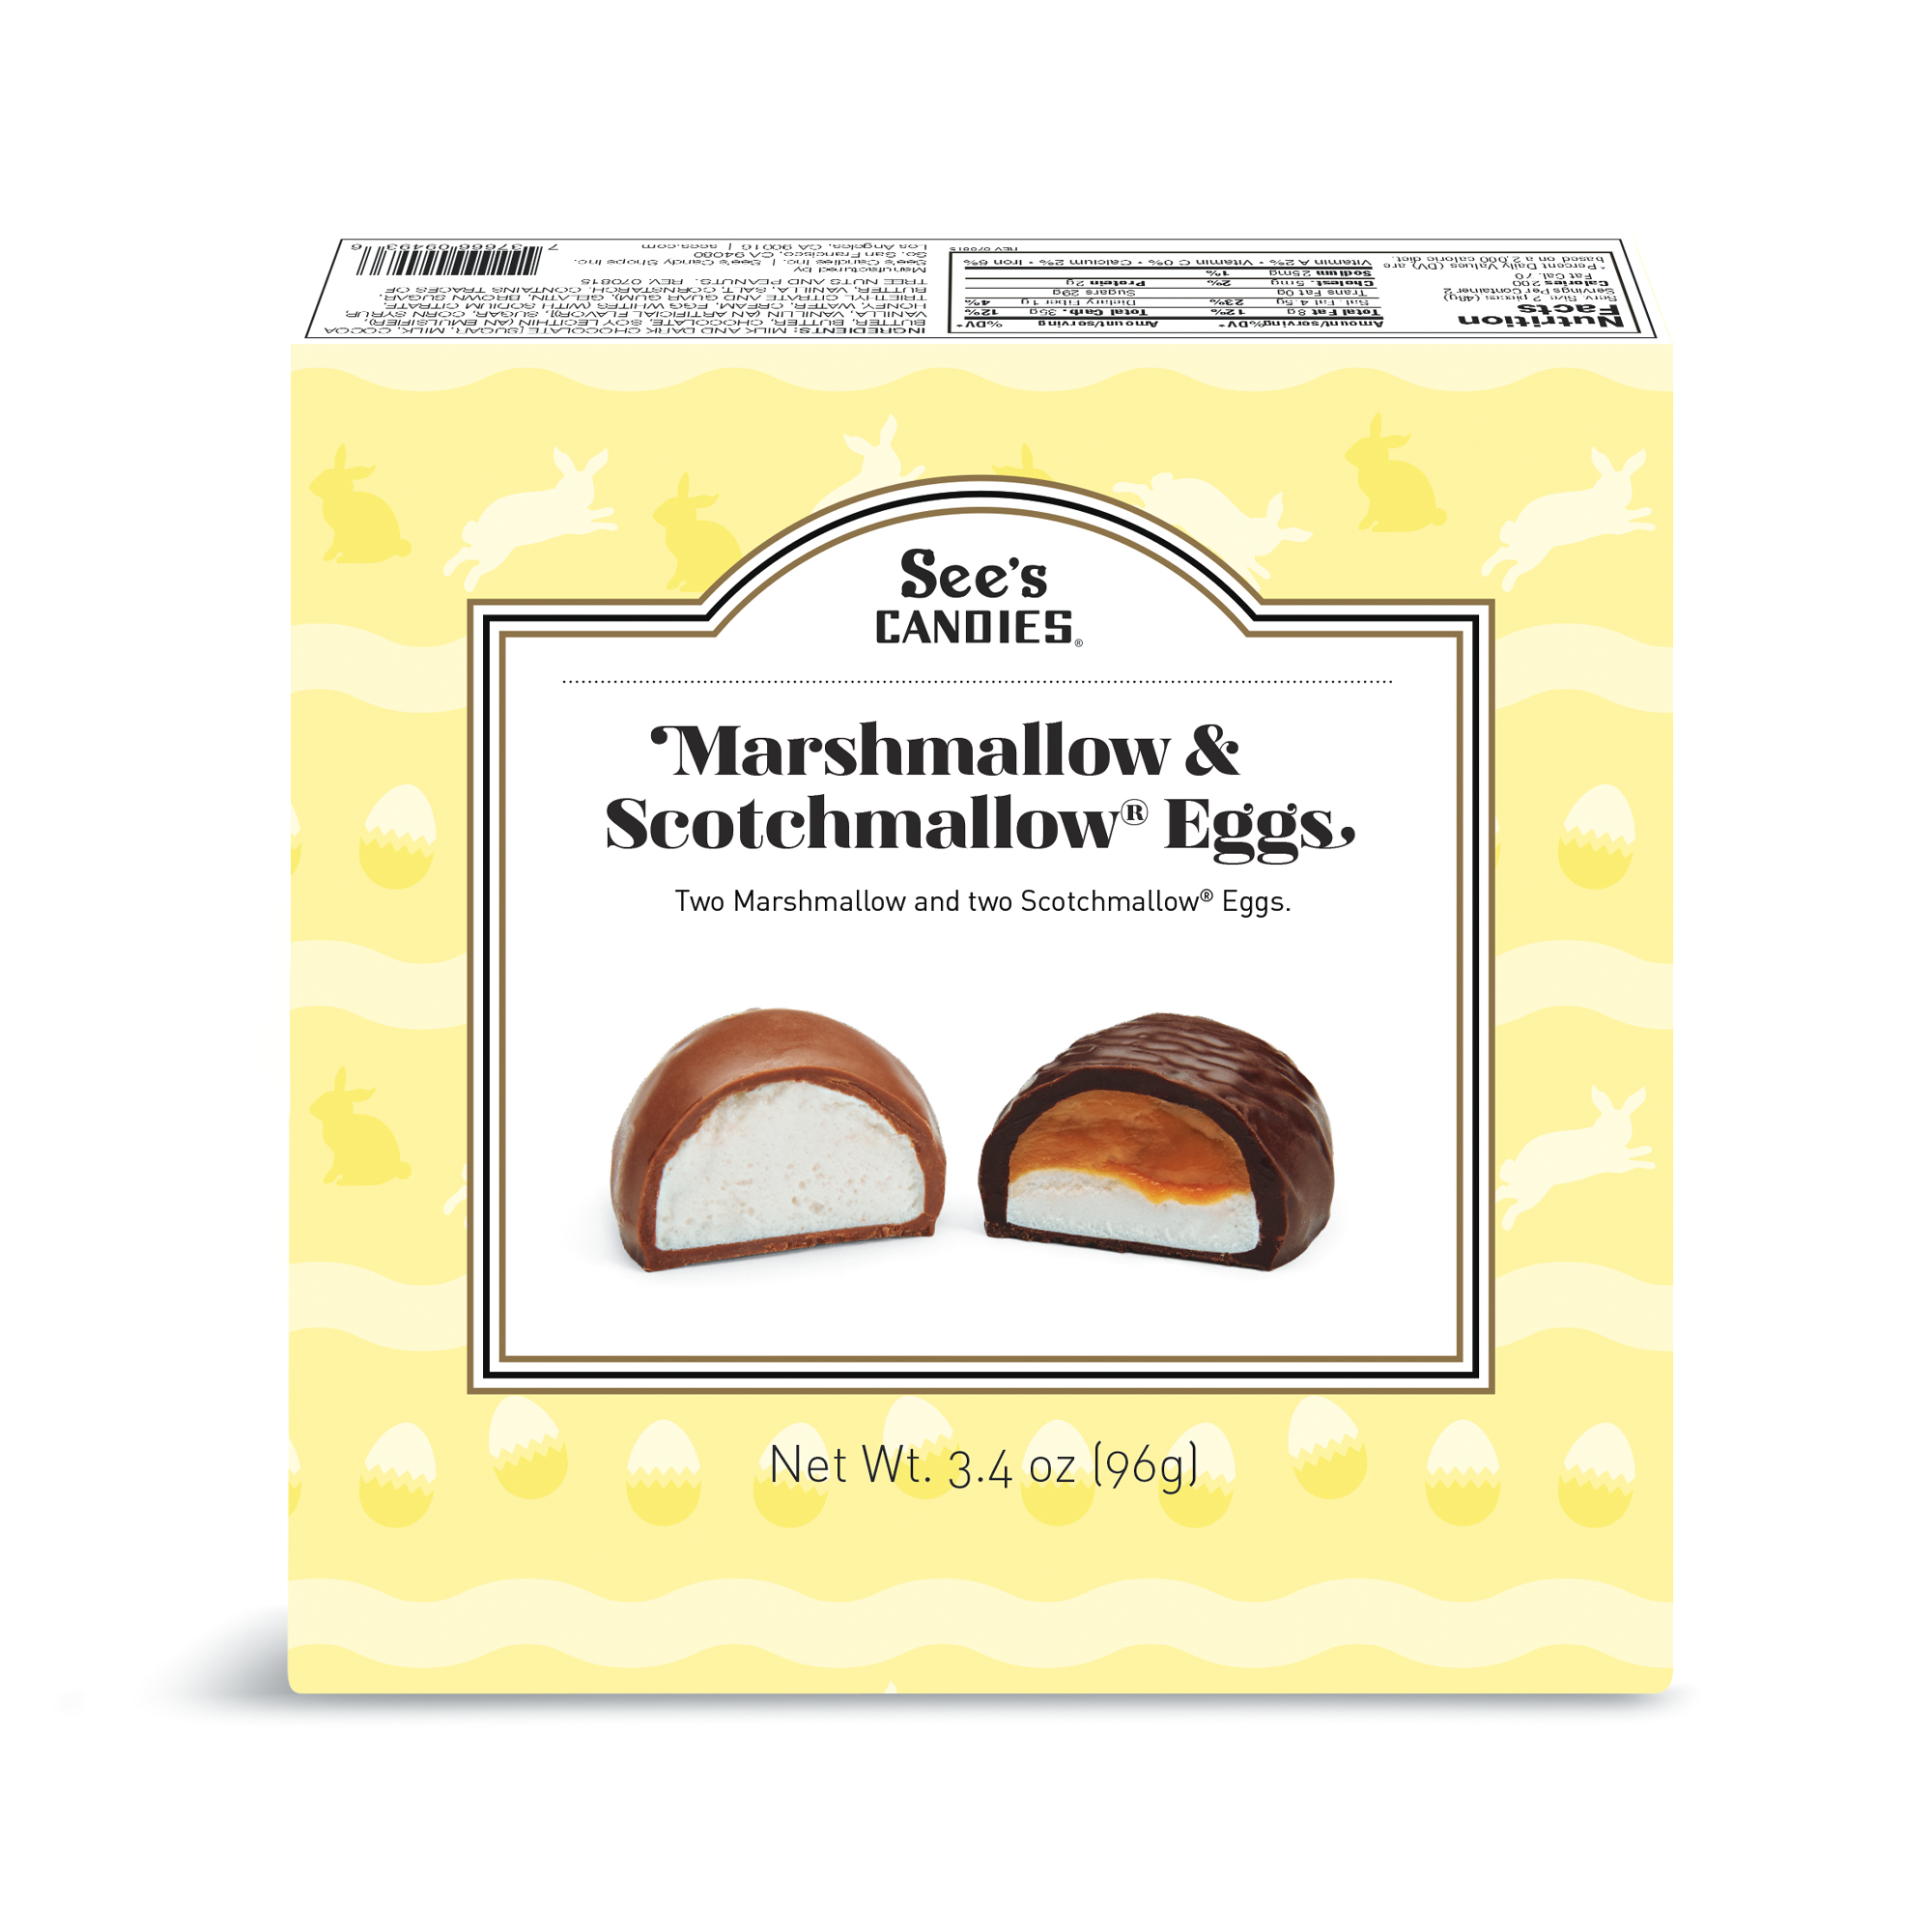 View of Marshmallow & Scotchmallow® Eggs 2